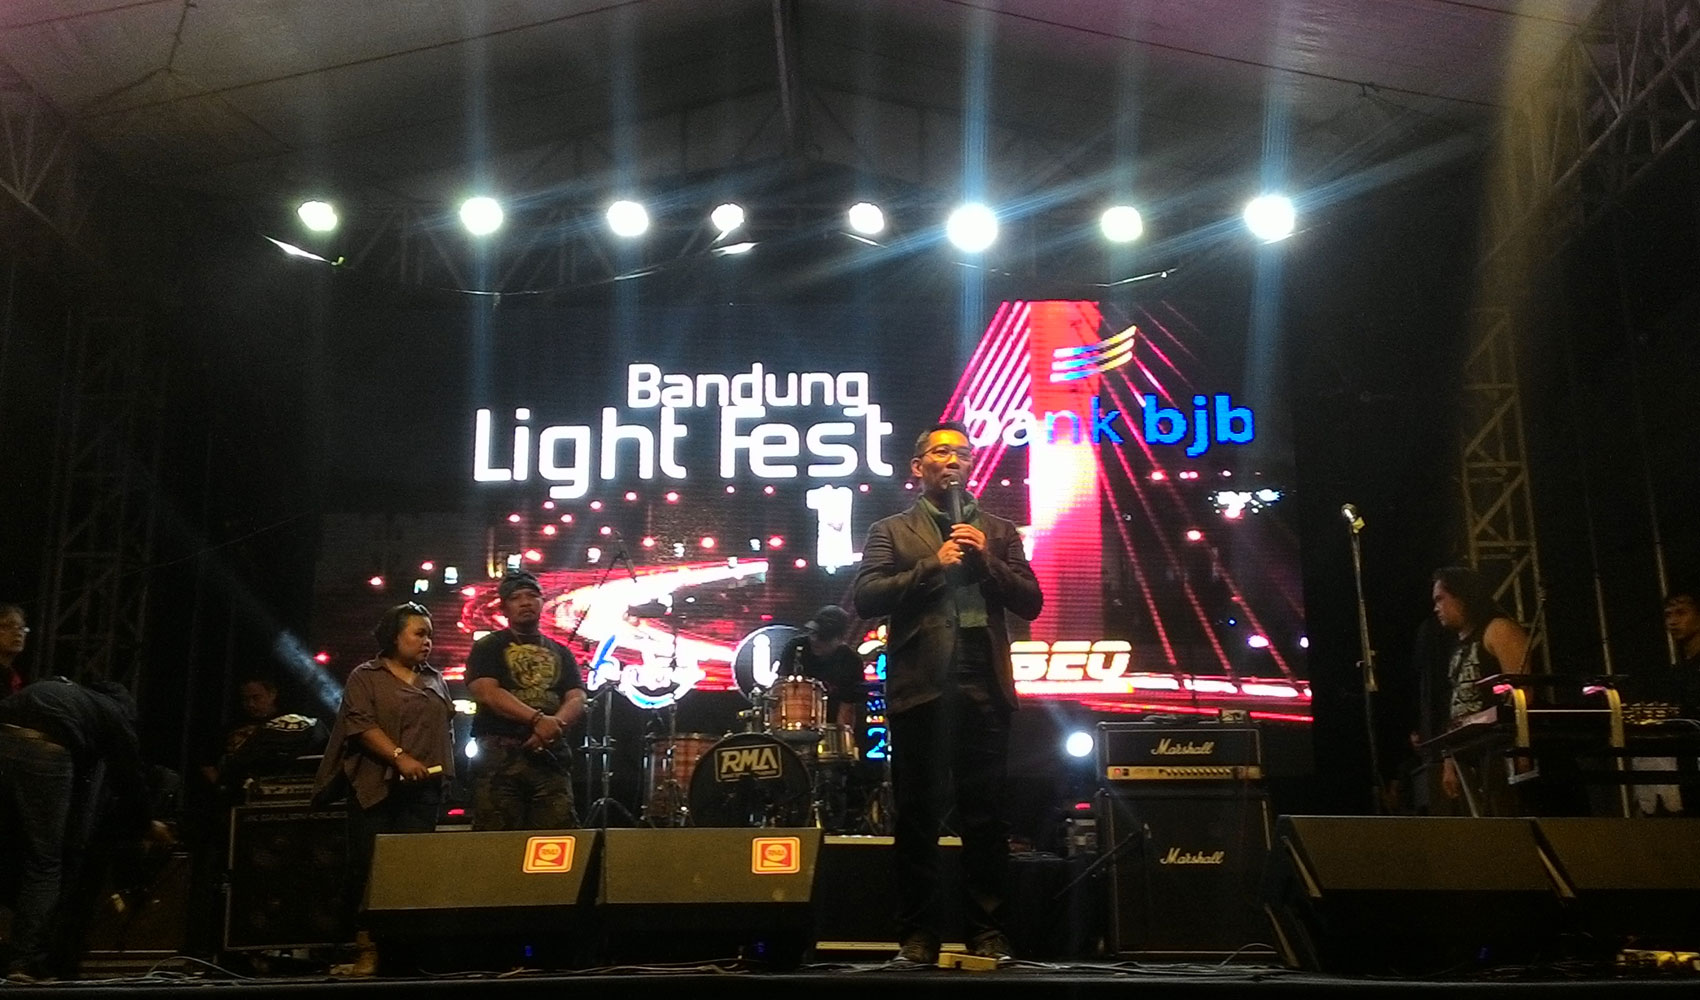 Sewa Led Display Murah dan Berpengalaman